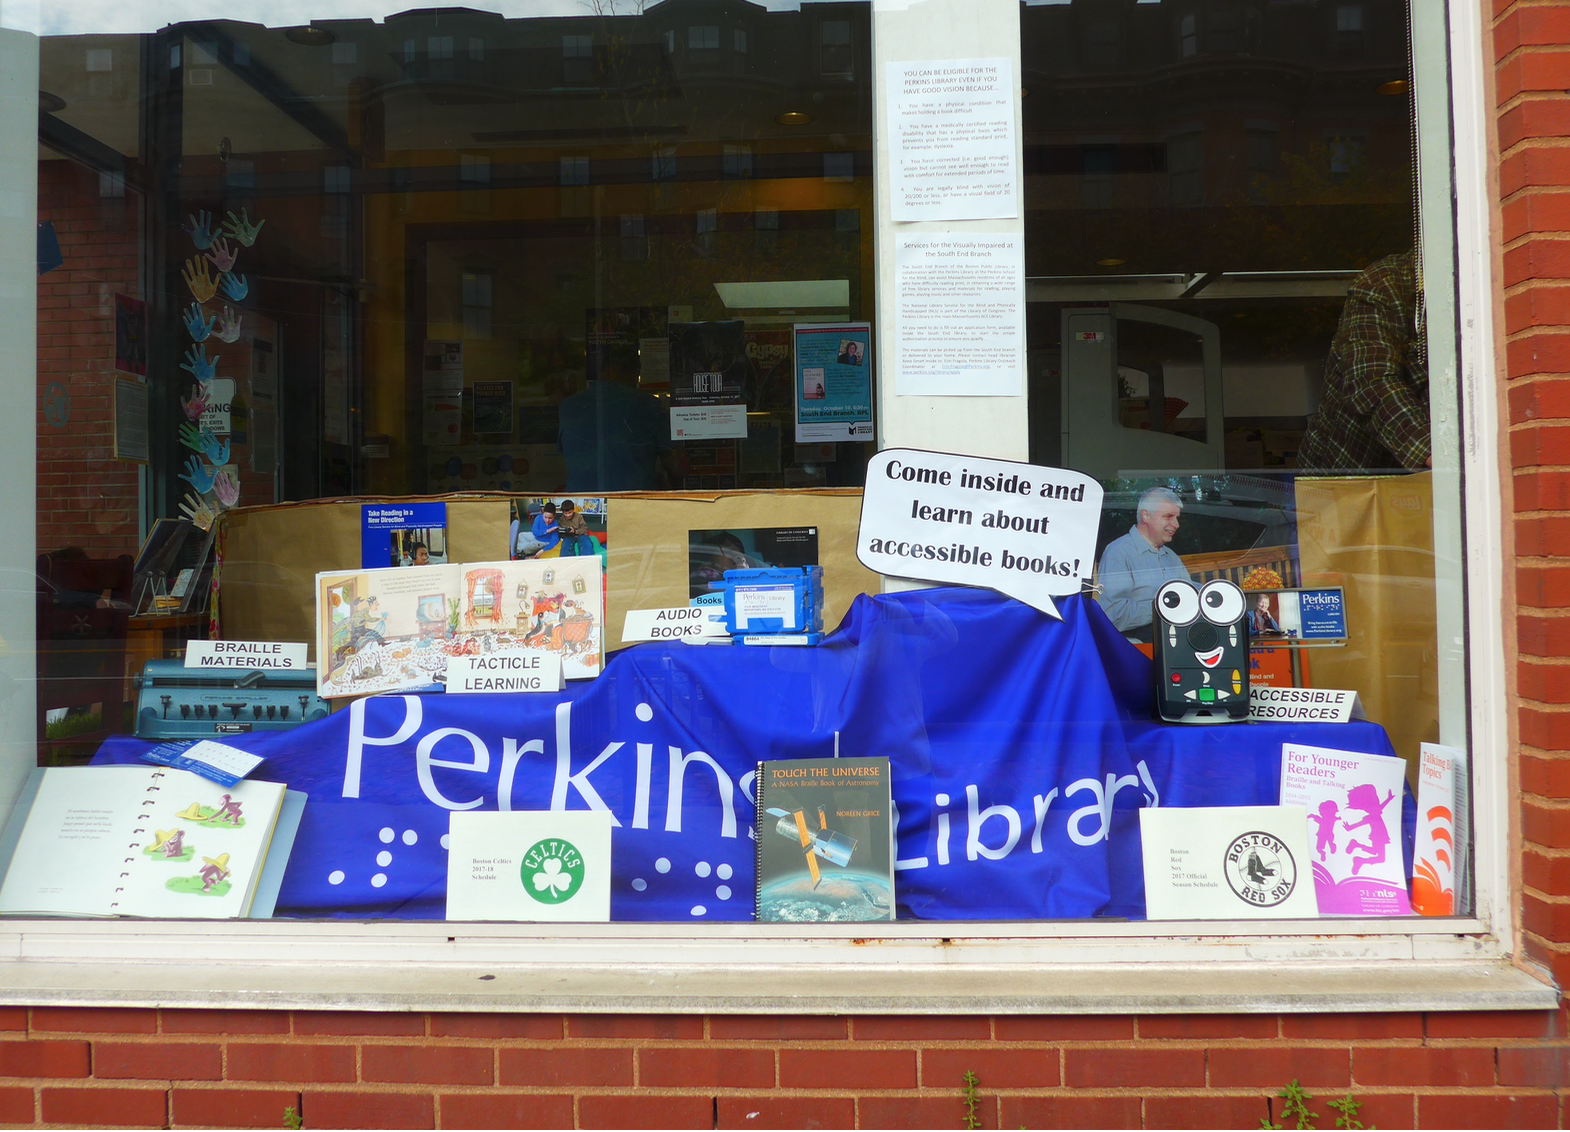 The Tremont Street window installation of services and materials offered by the Perkins Braille and Talking Books Library